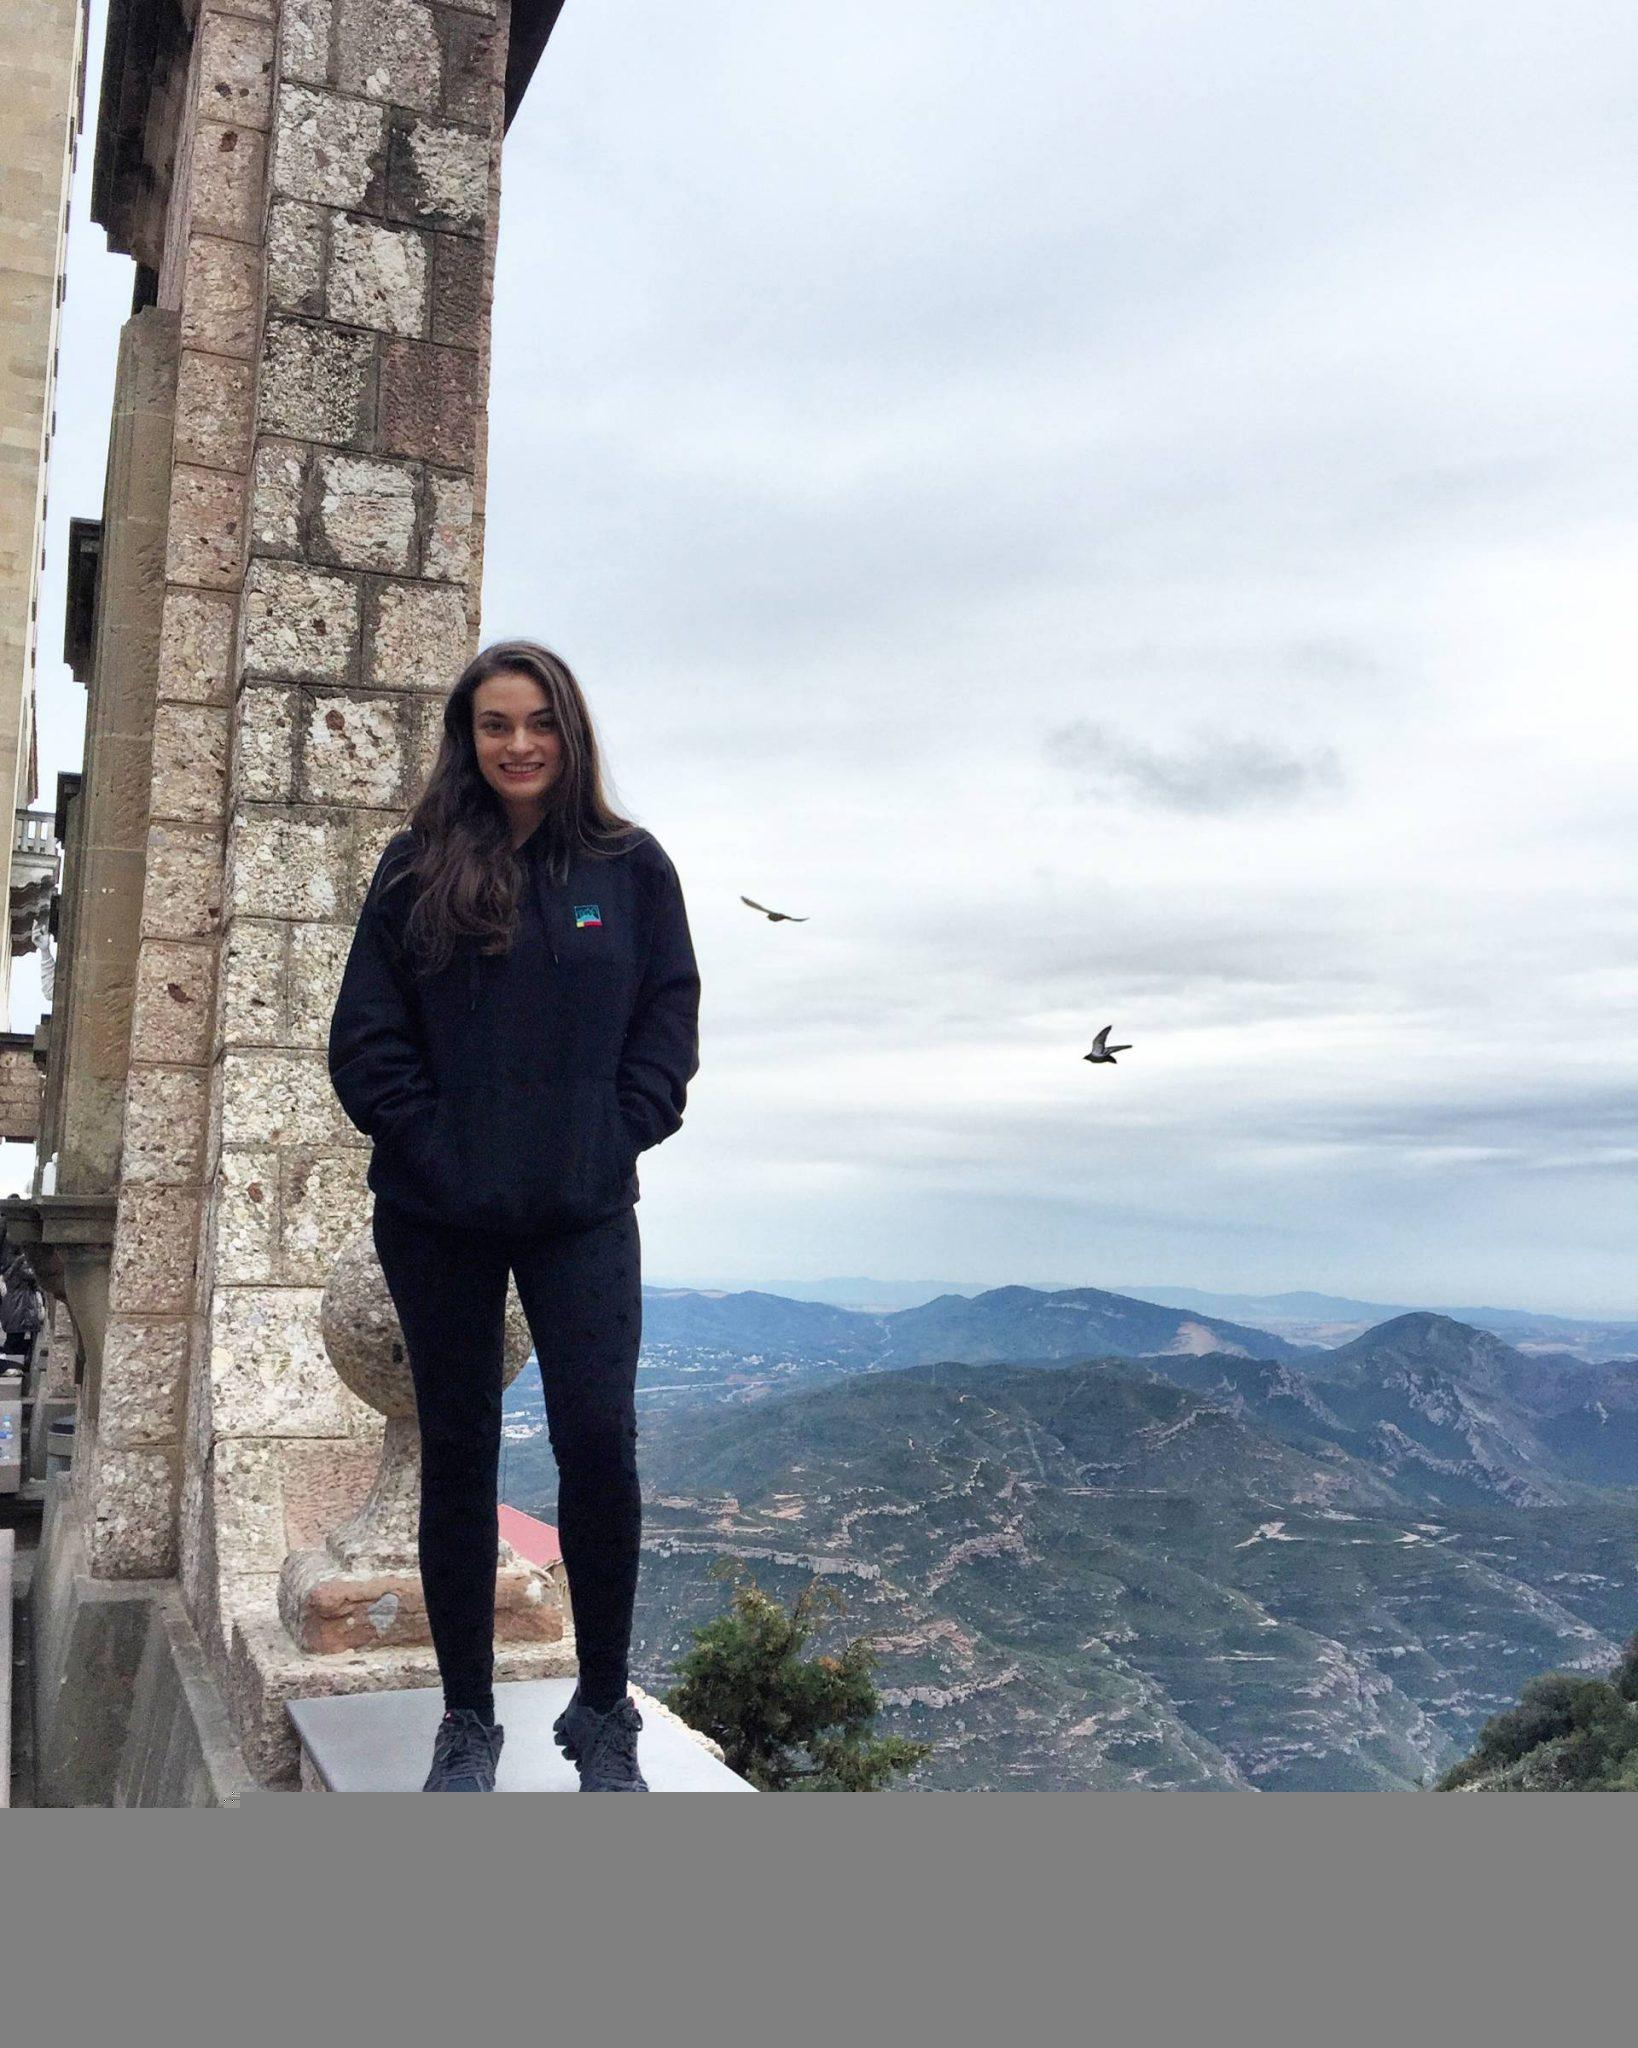 View from the church on top of Montserrat